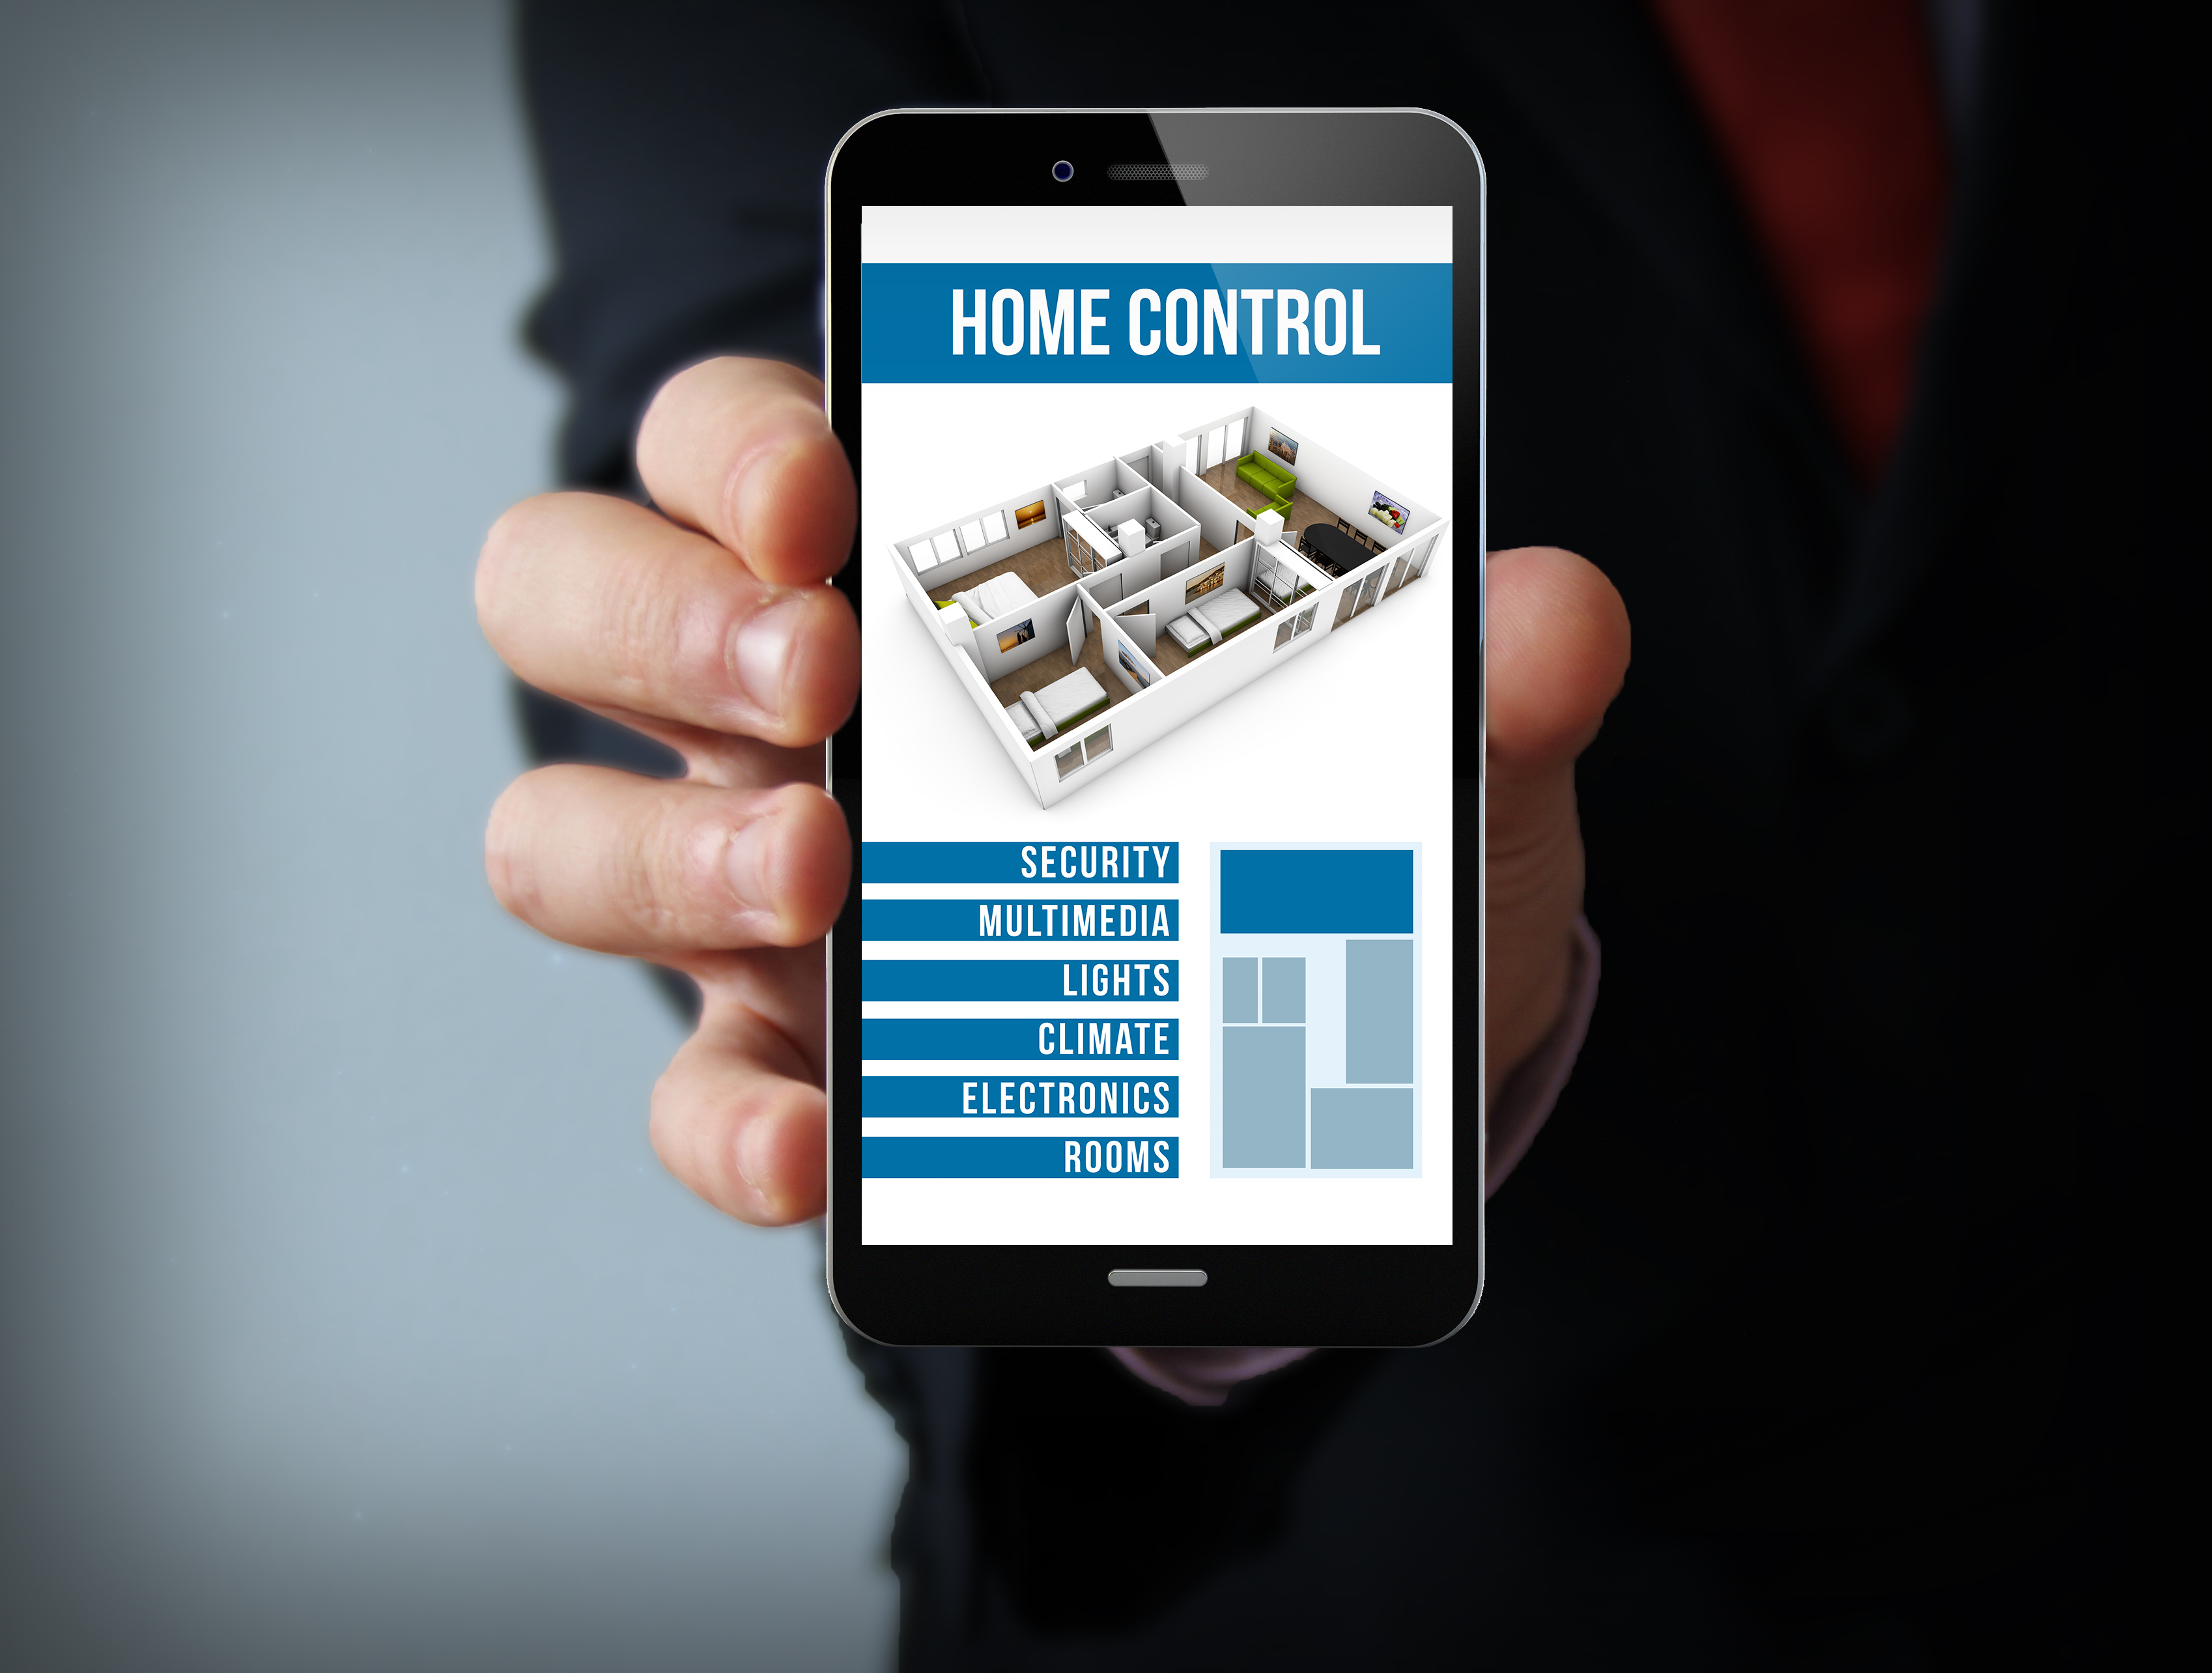 Builder Structural Warranties Young Homebuyers Structured Wiring Homepro S At A Glance Home Smart Technology Is What Buyers Are Looking For